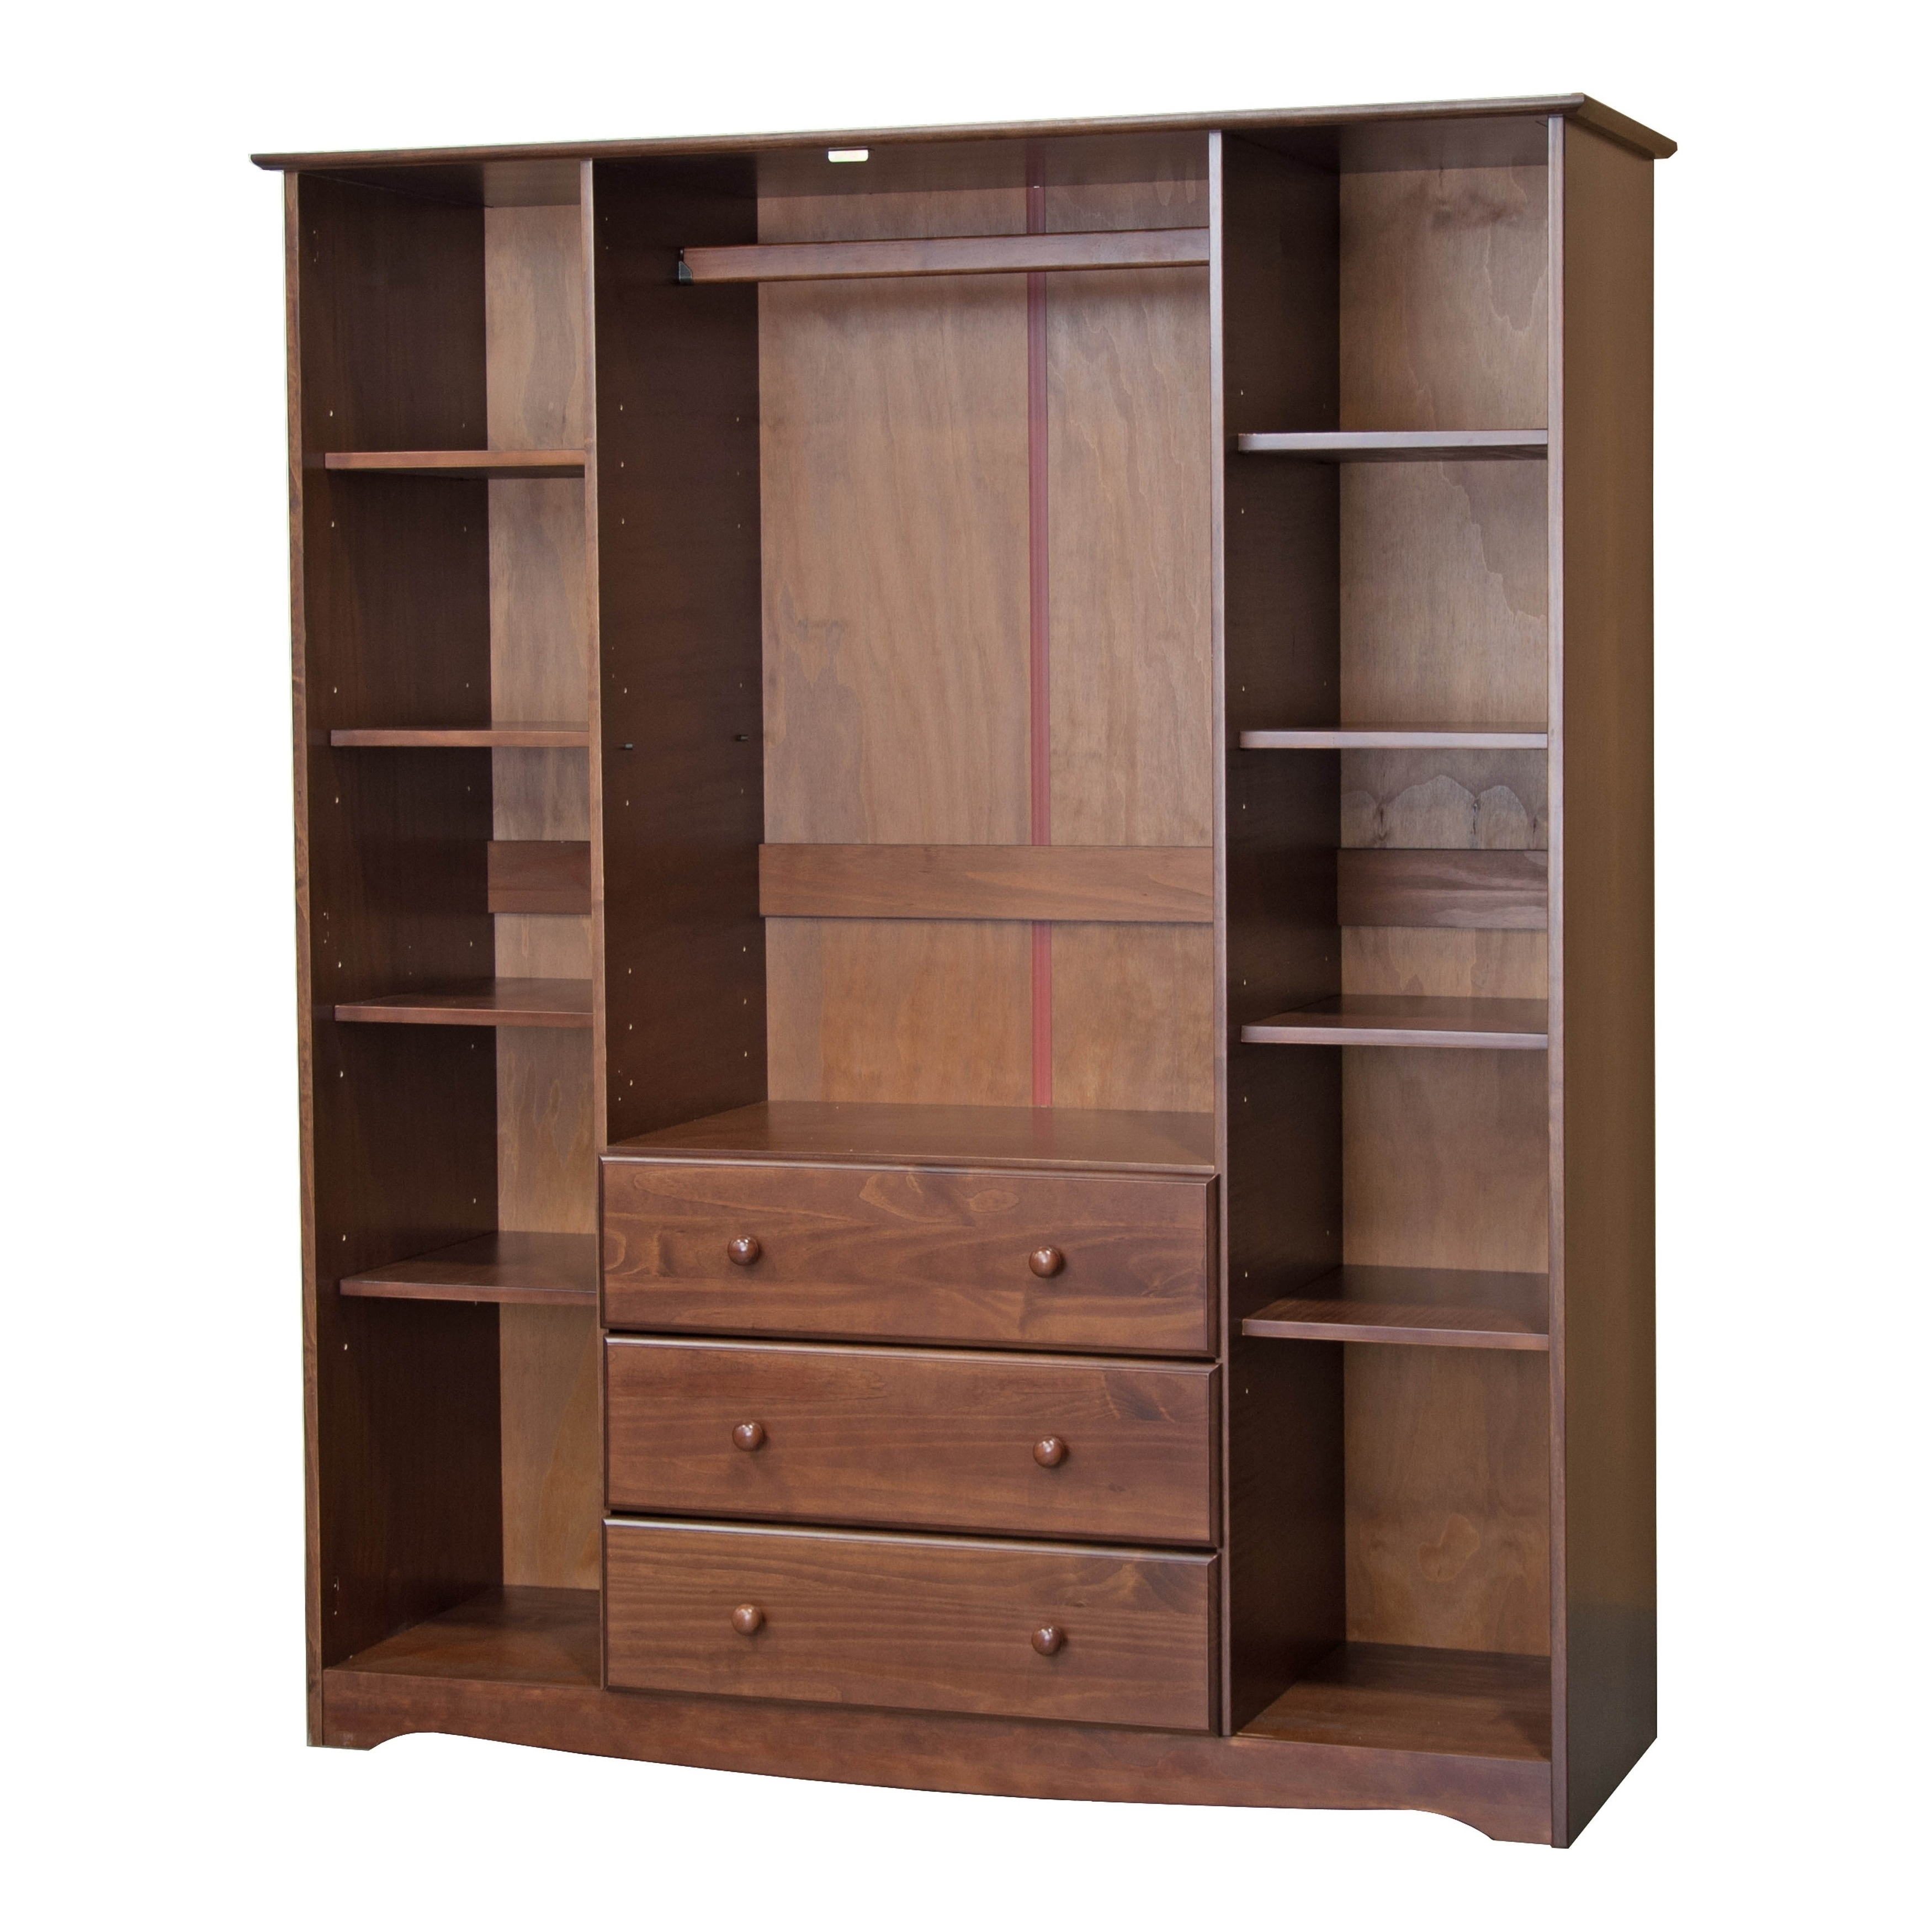 Family Wardrobe Armoire Solid Wood Optional Small Shelves Set Of 4 13 75 W X 17 25 D 0 H Free Shipping Today 19897076